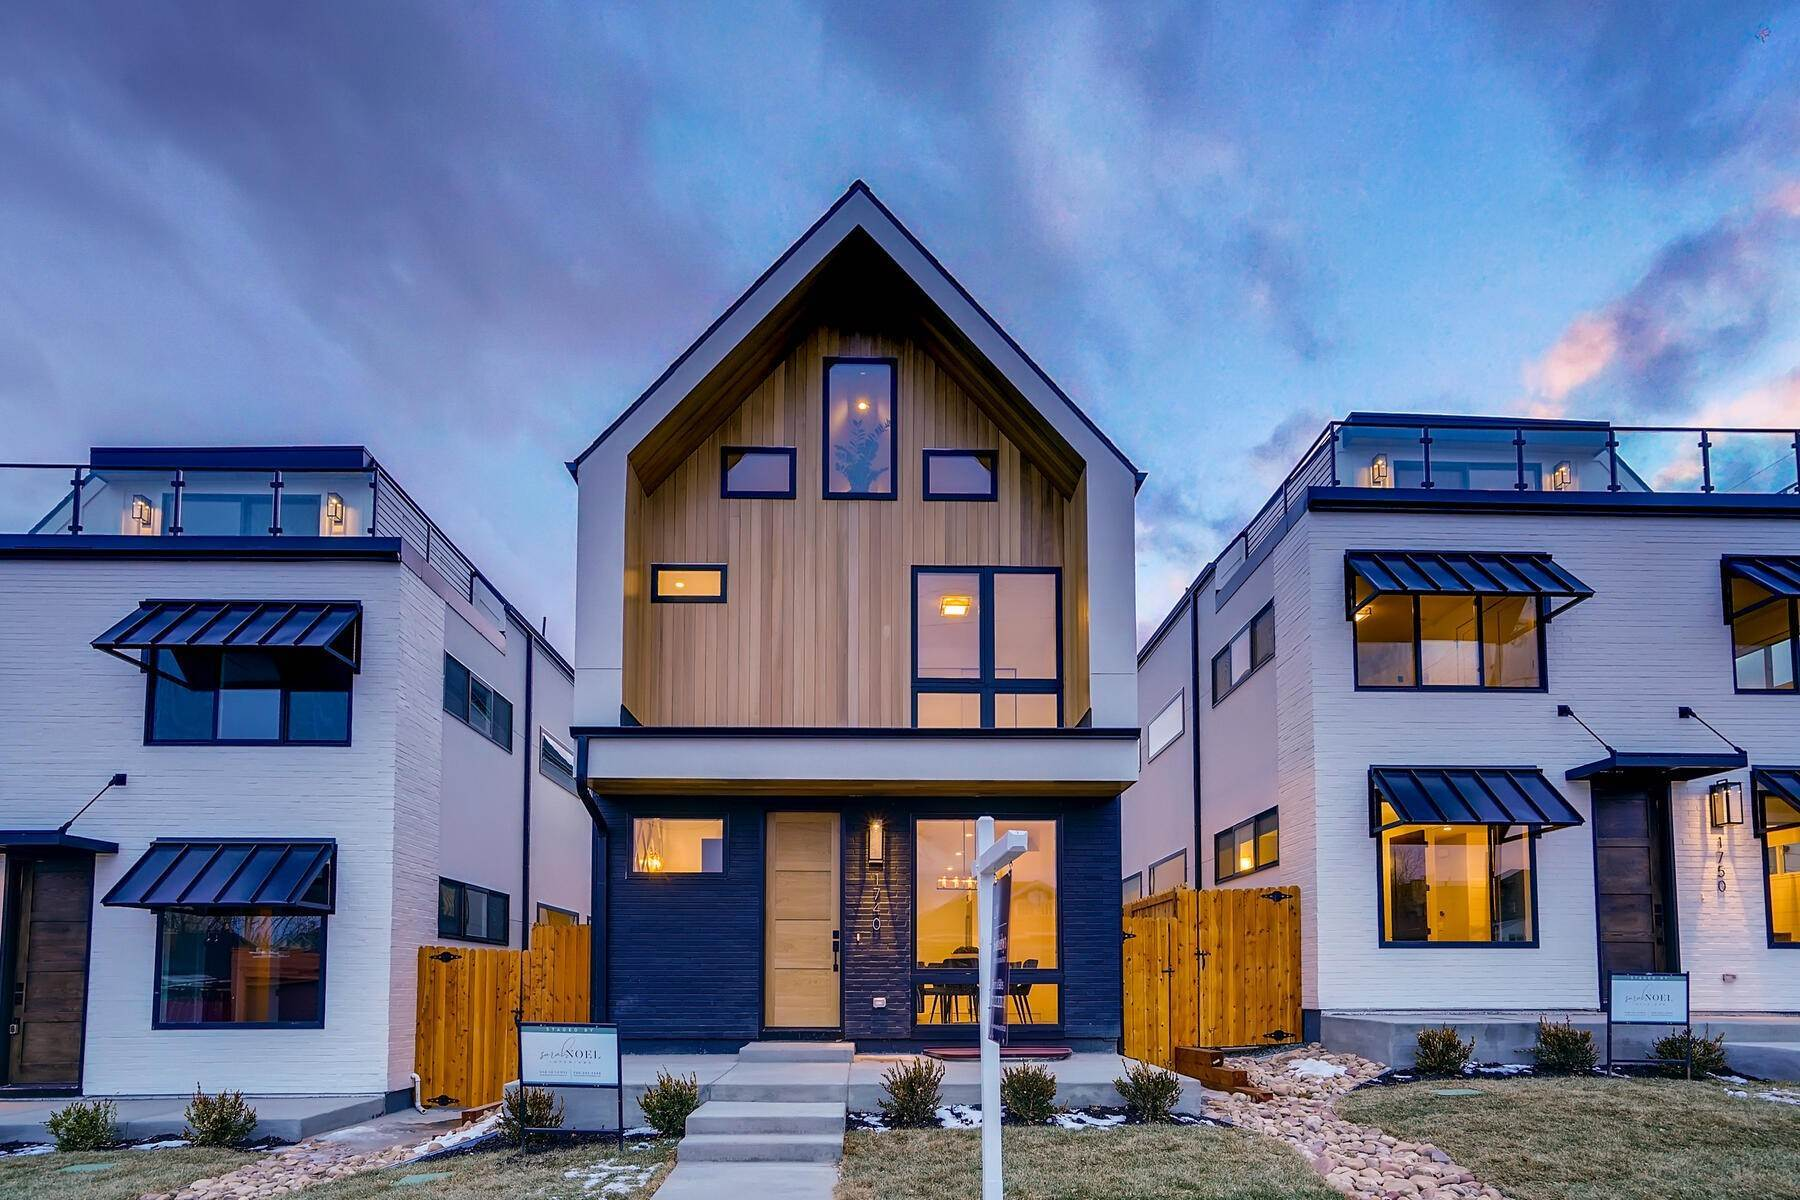 Single Family Homes for Active at New Custom Brick Home In LoHi 1740 W 37th Avenue Denver, Colorado 80211 United States